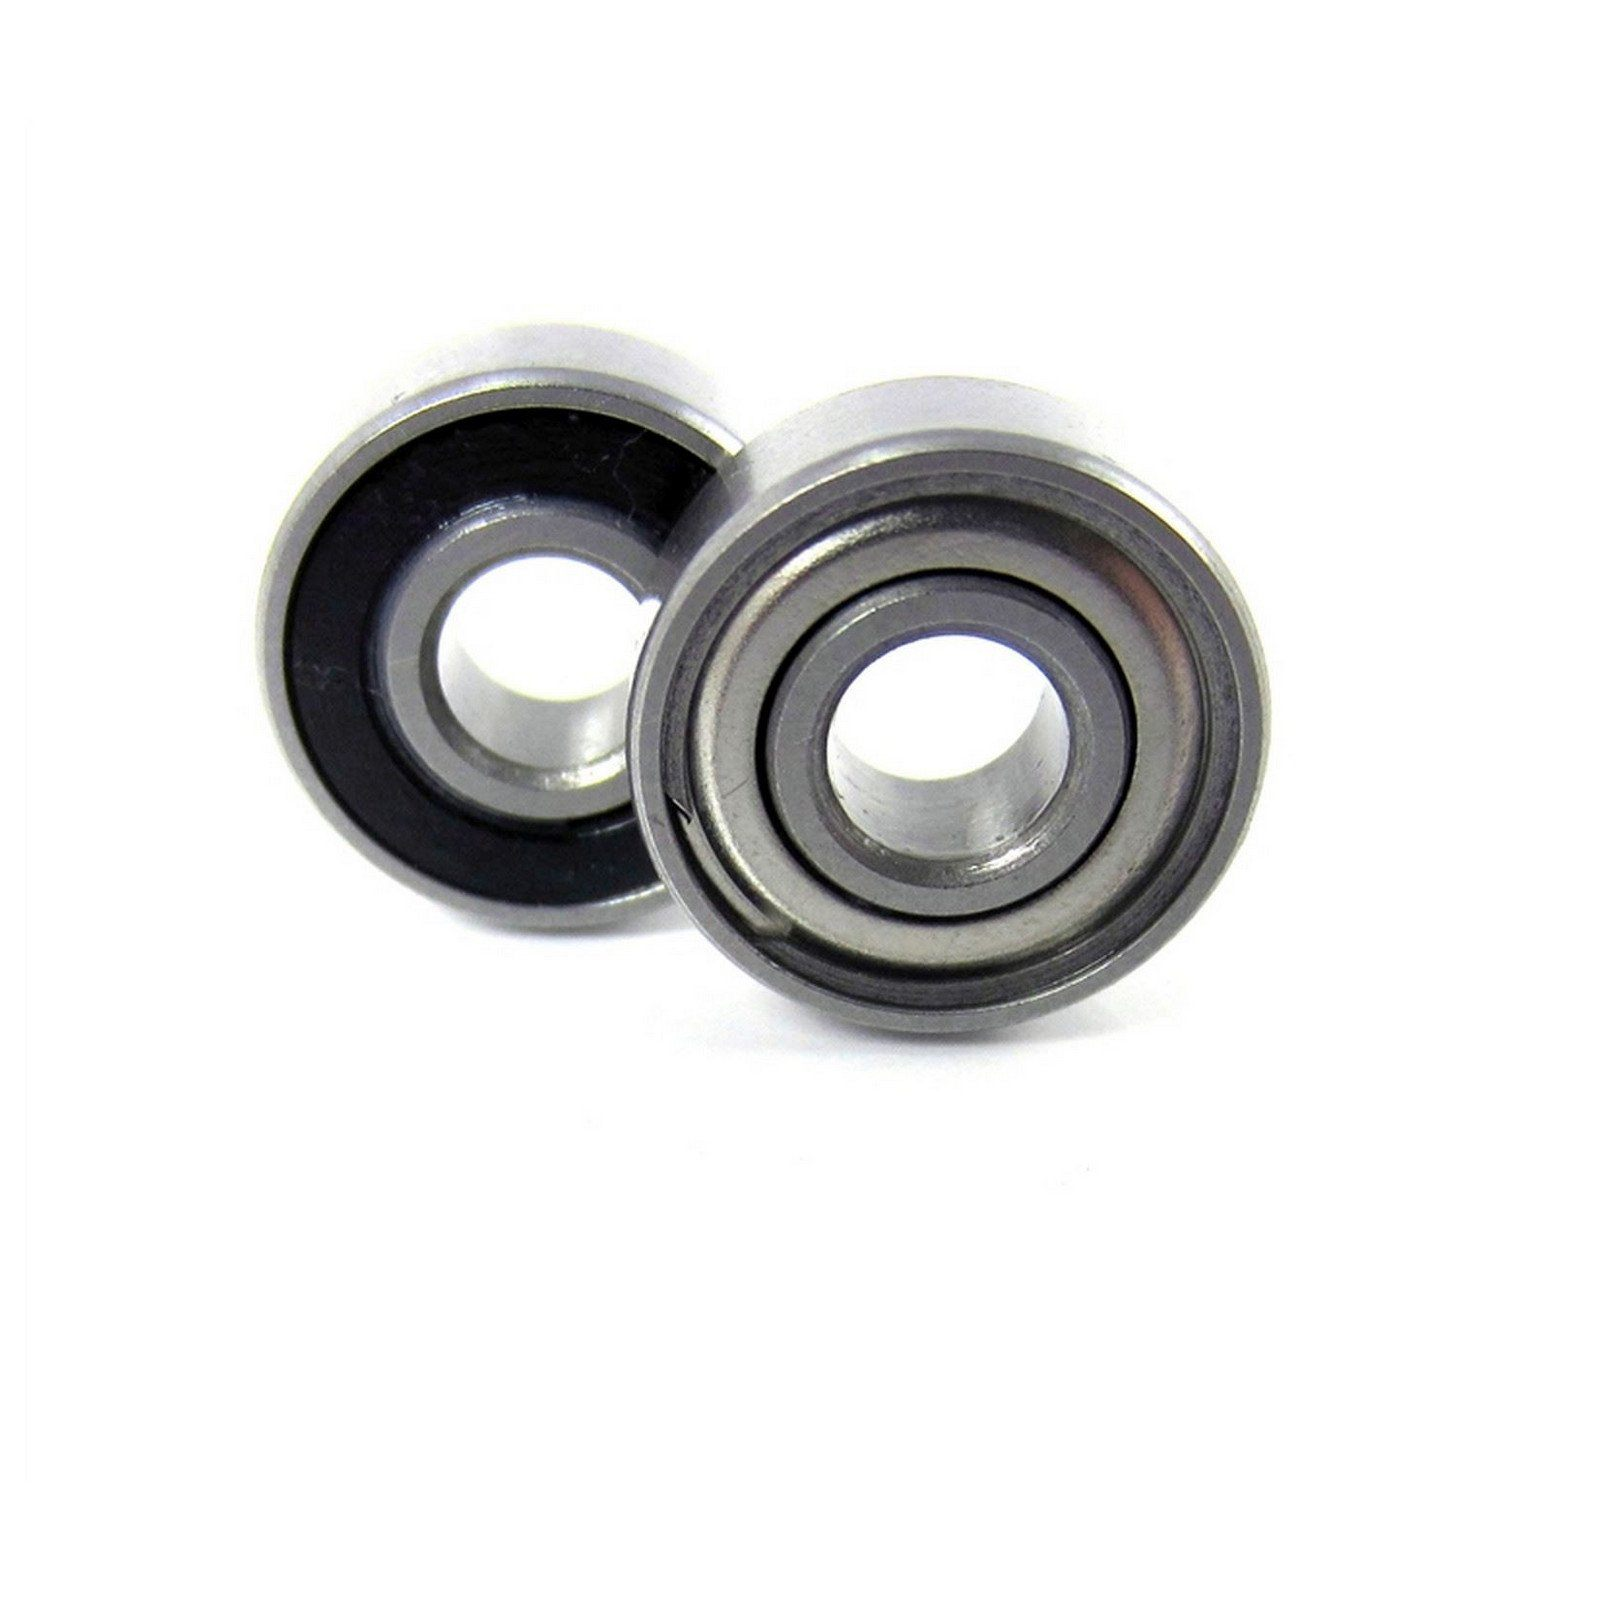 TRB RC 3/16x1/2x49/250 Precision Ceramic Ball Bearings Hybrid Seals (2) - trb-rc-bearings